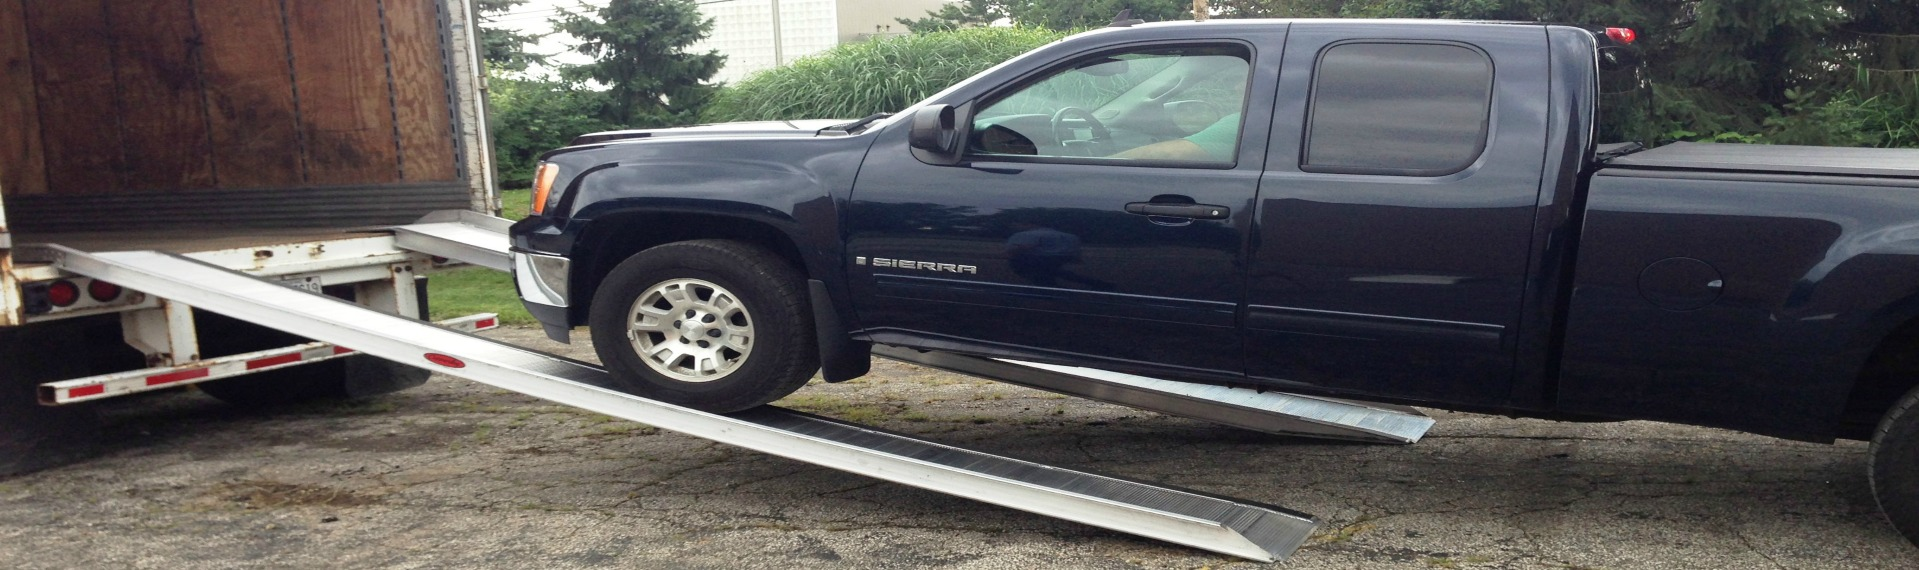 Metal Truck Ramps | Portable Loading Dock Equipment